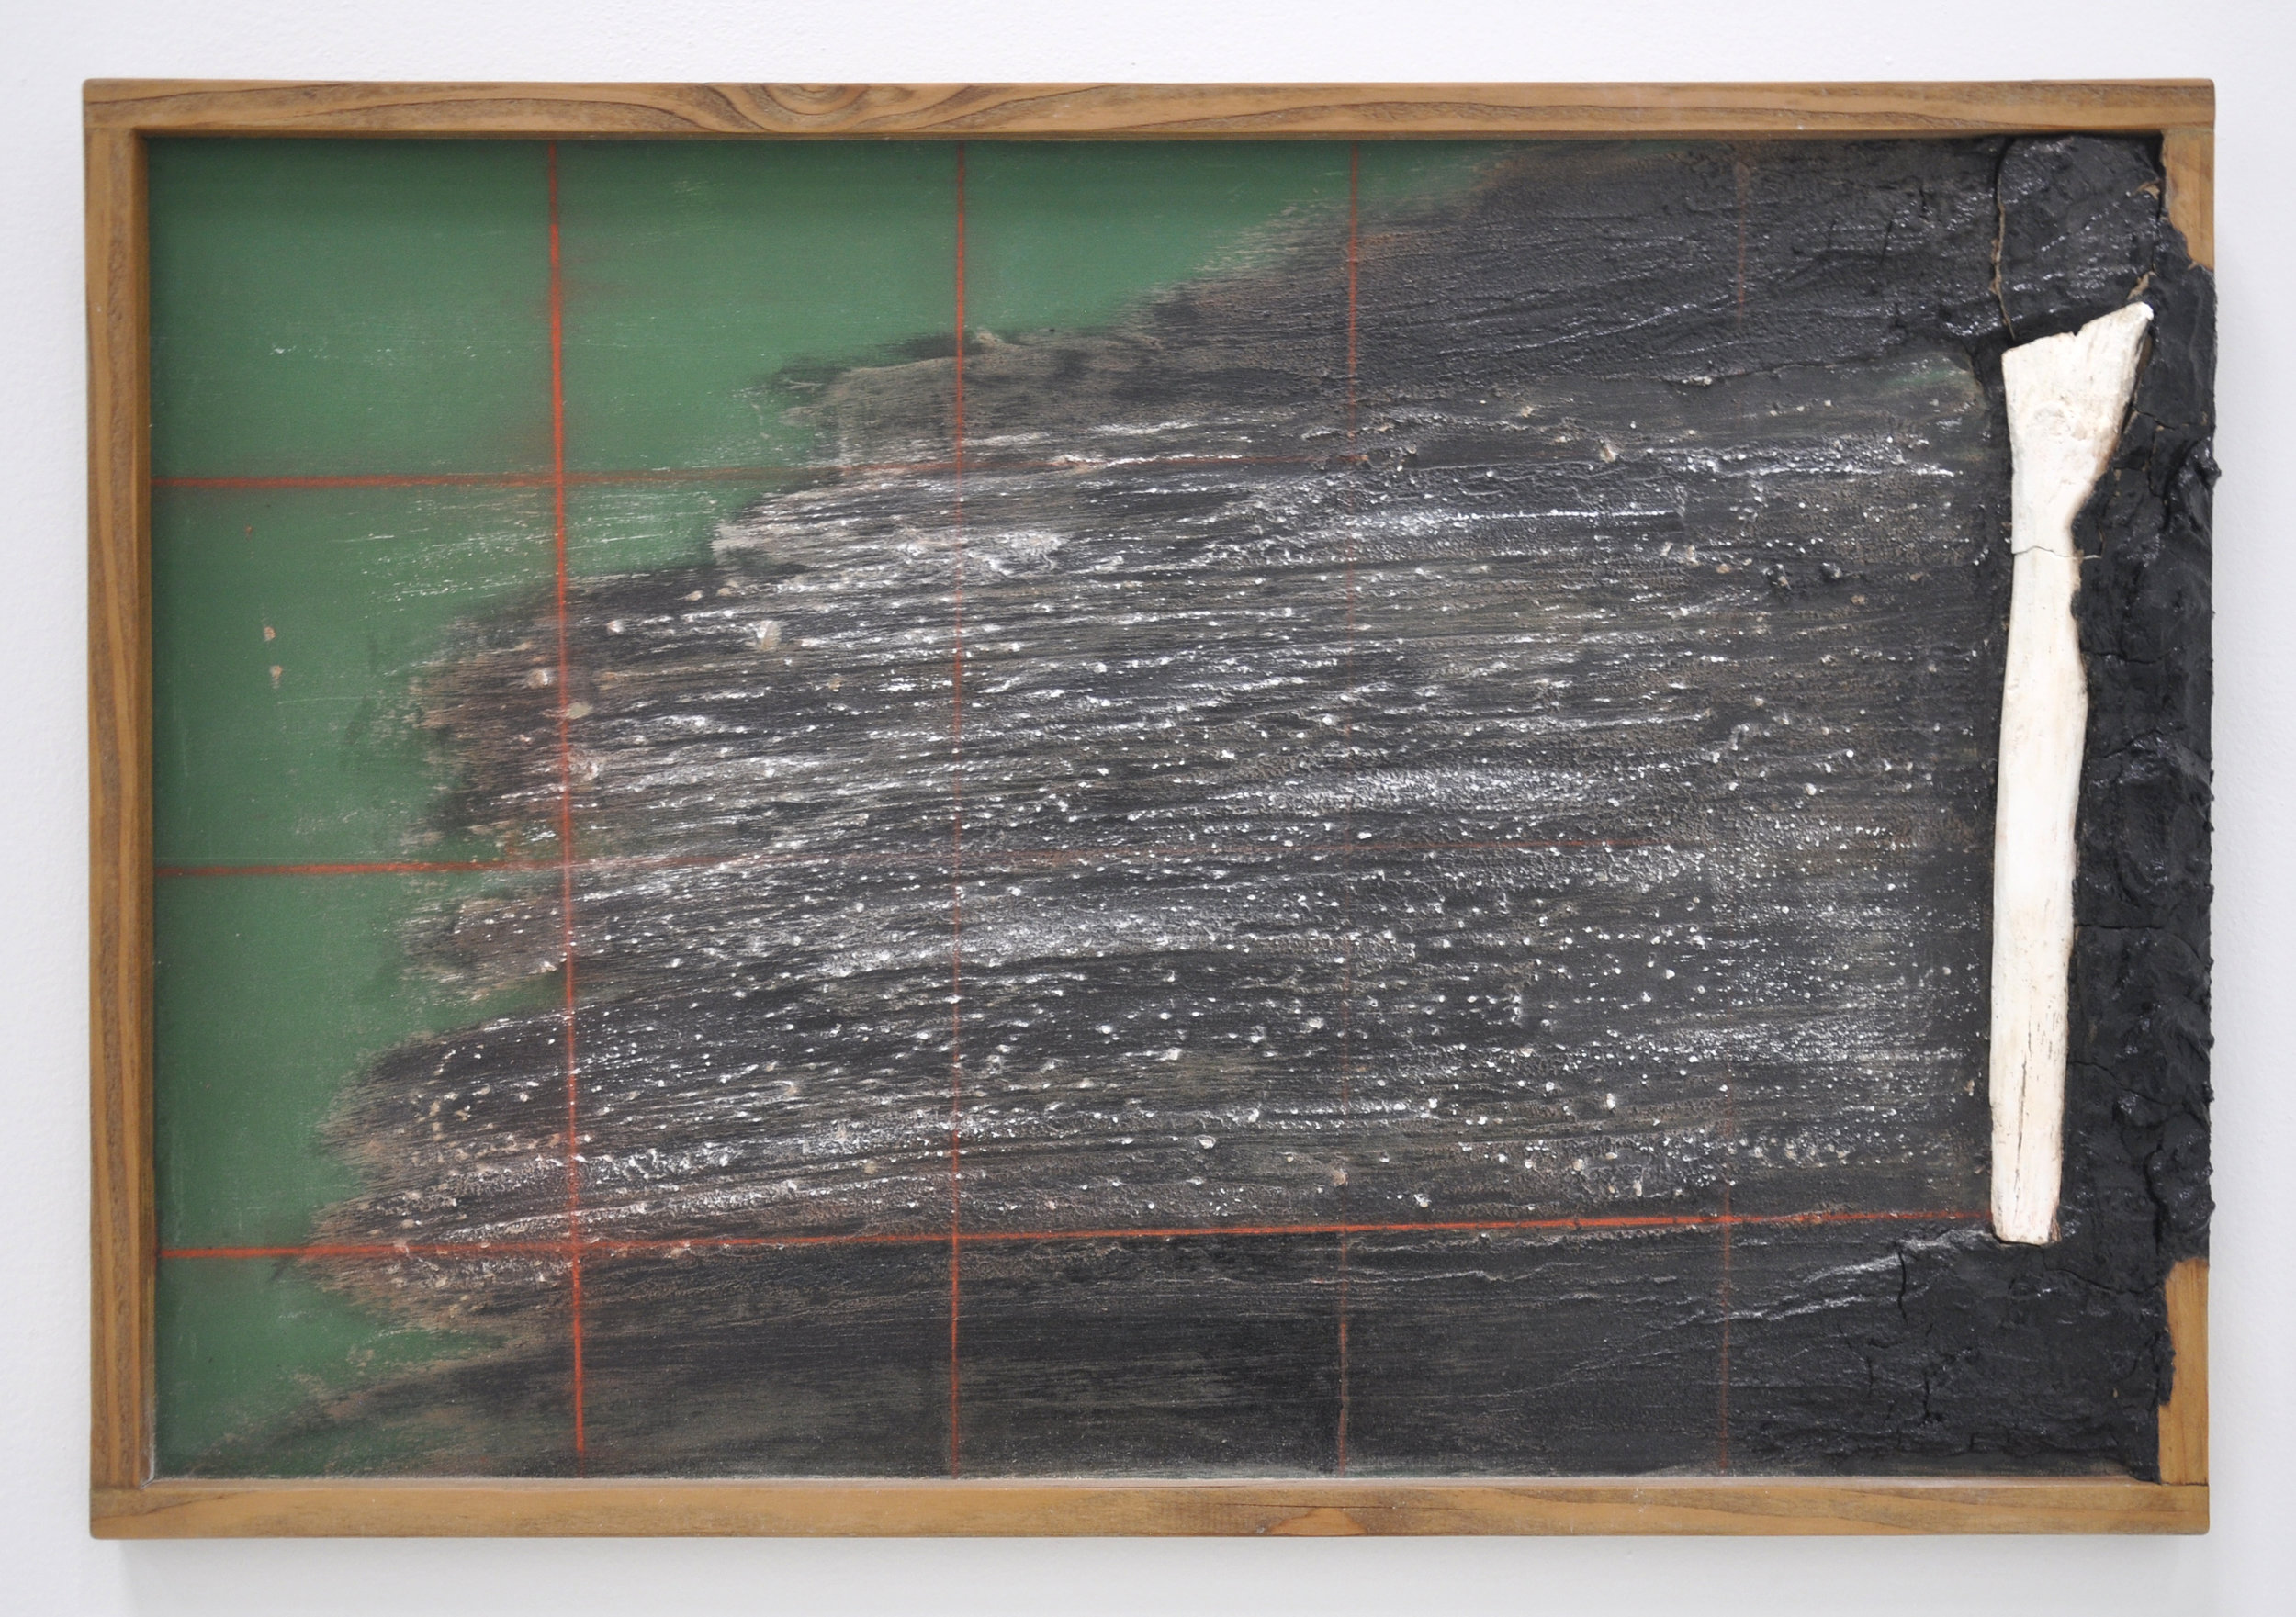 Ariel Rene Jackson, Untitled, Panel, Wood, Chalk, Soil, Chalkboard Paint, Red Line Chalk, 14 x 3 x 24in